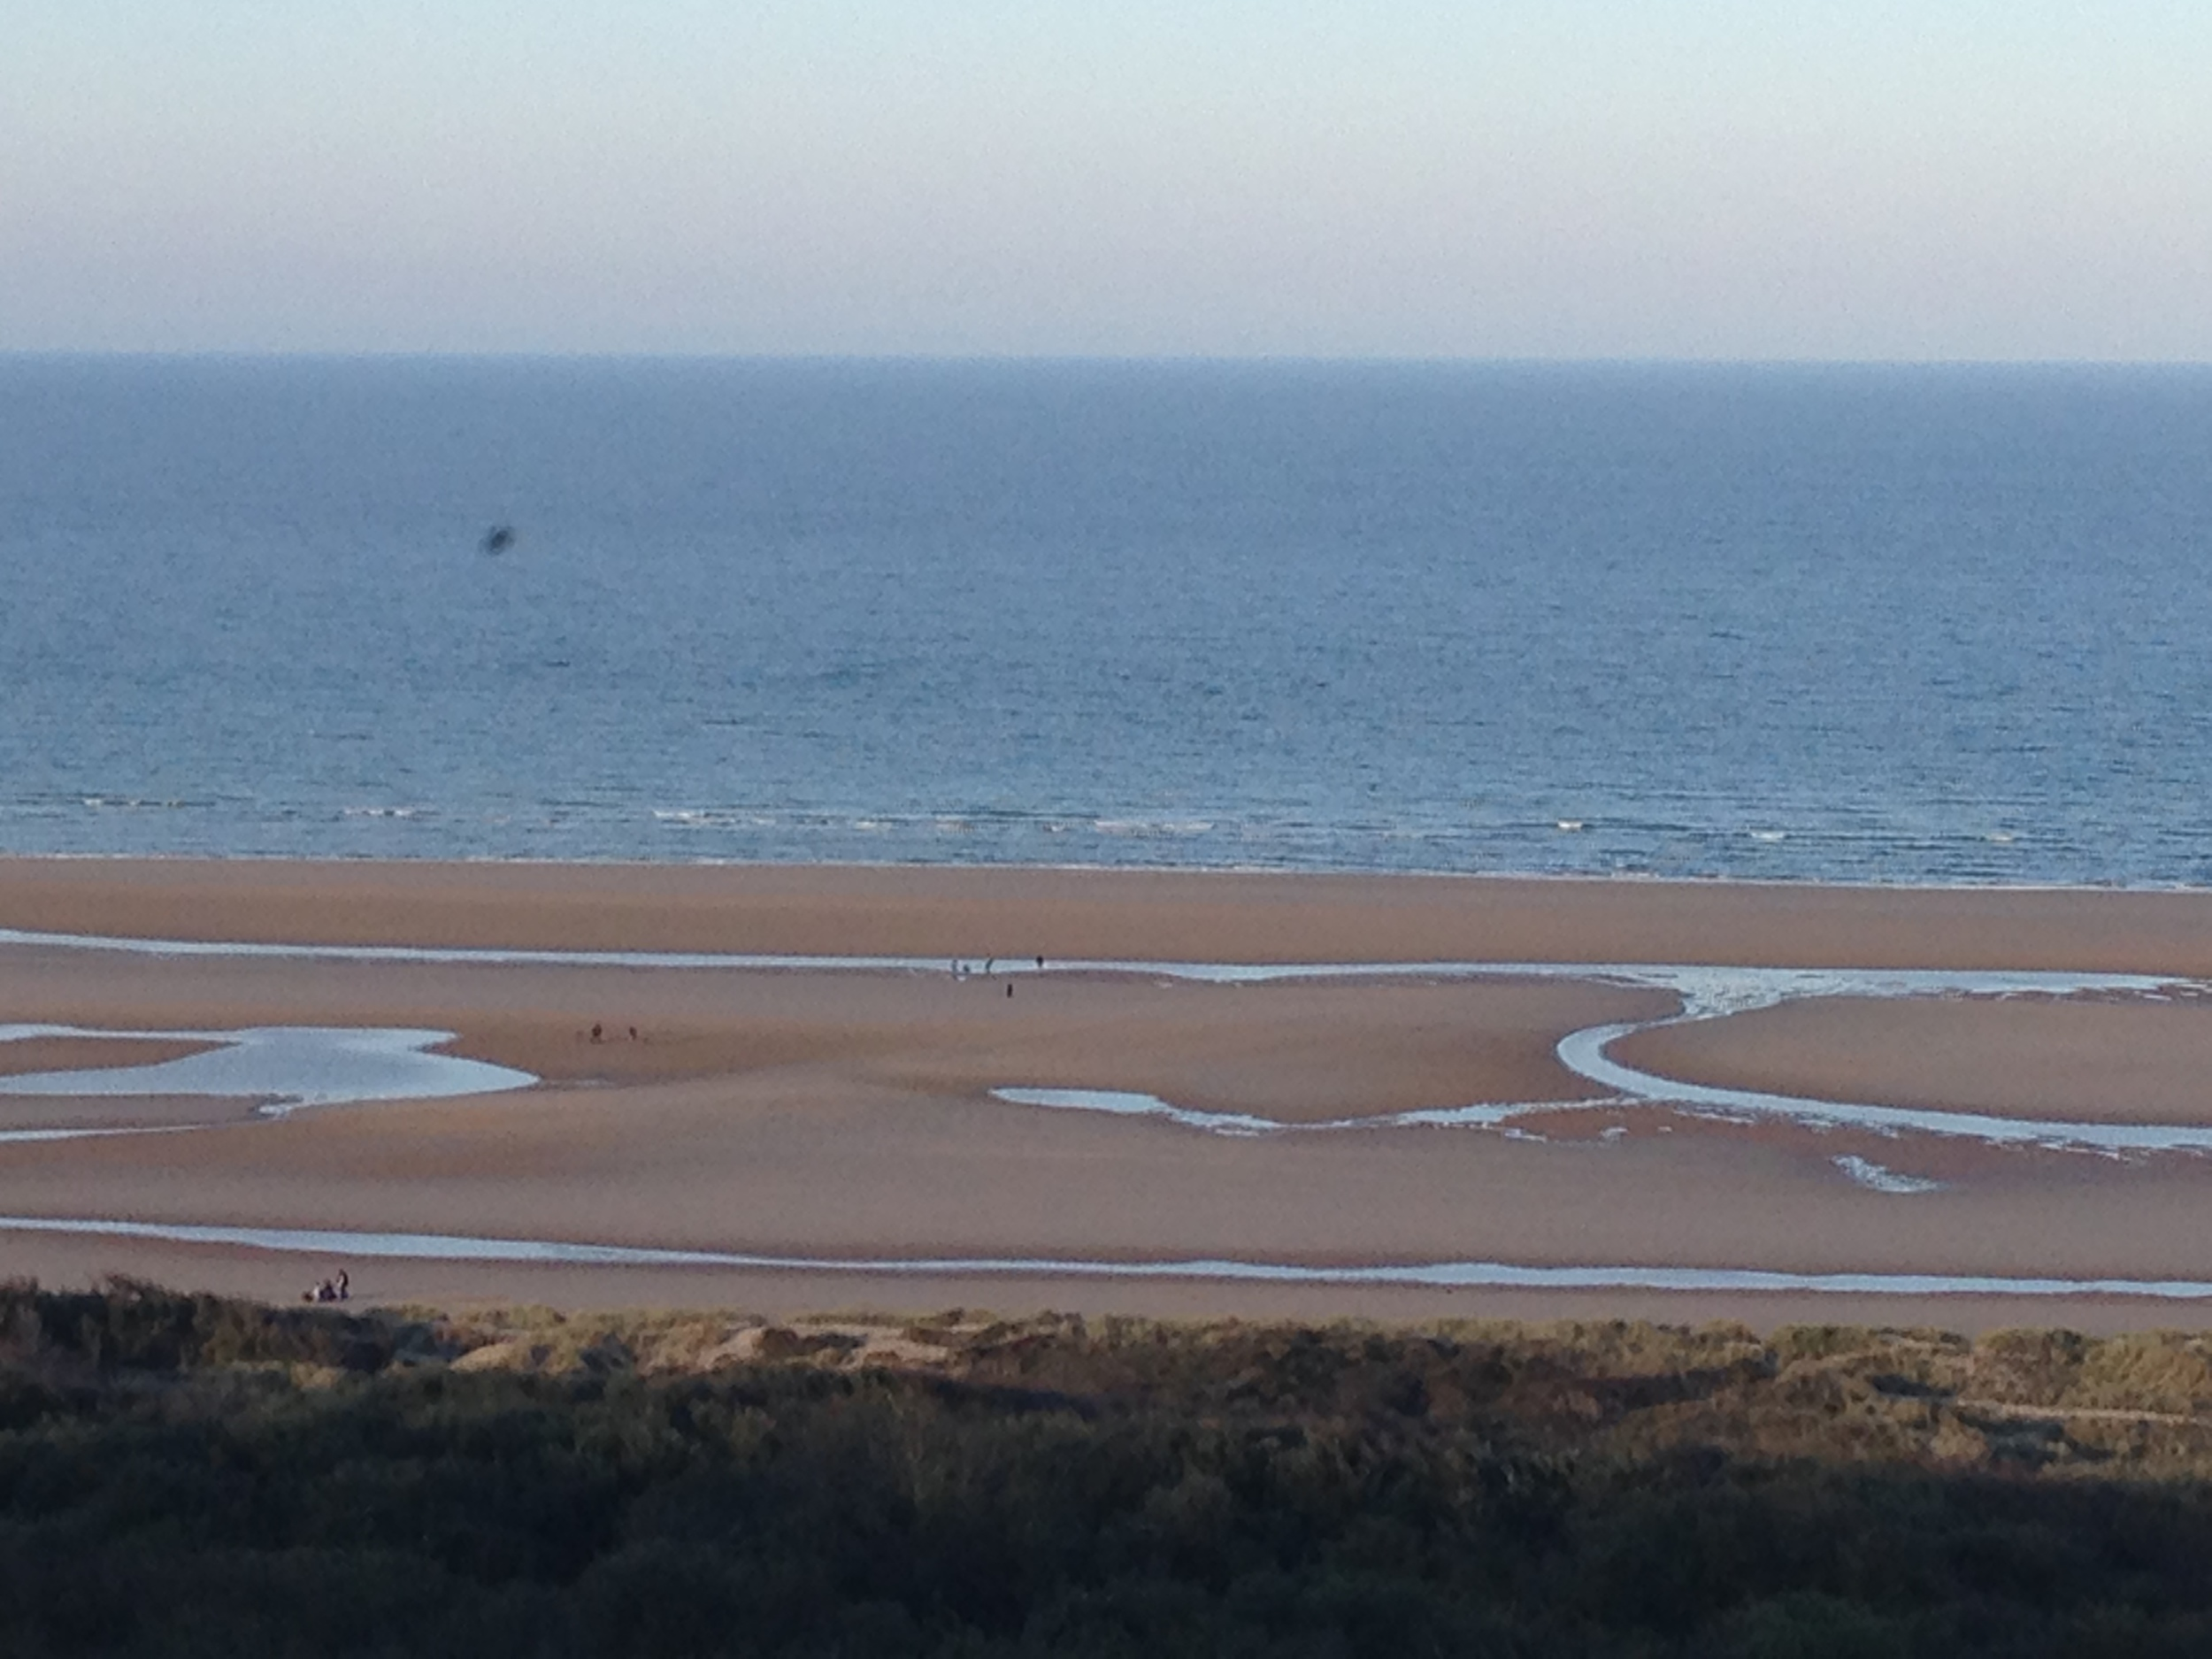 View down to beaches where Allied troops landed. Hard to imagine on such bucolic soil so many Allies lost their lives.